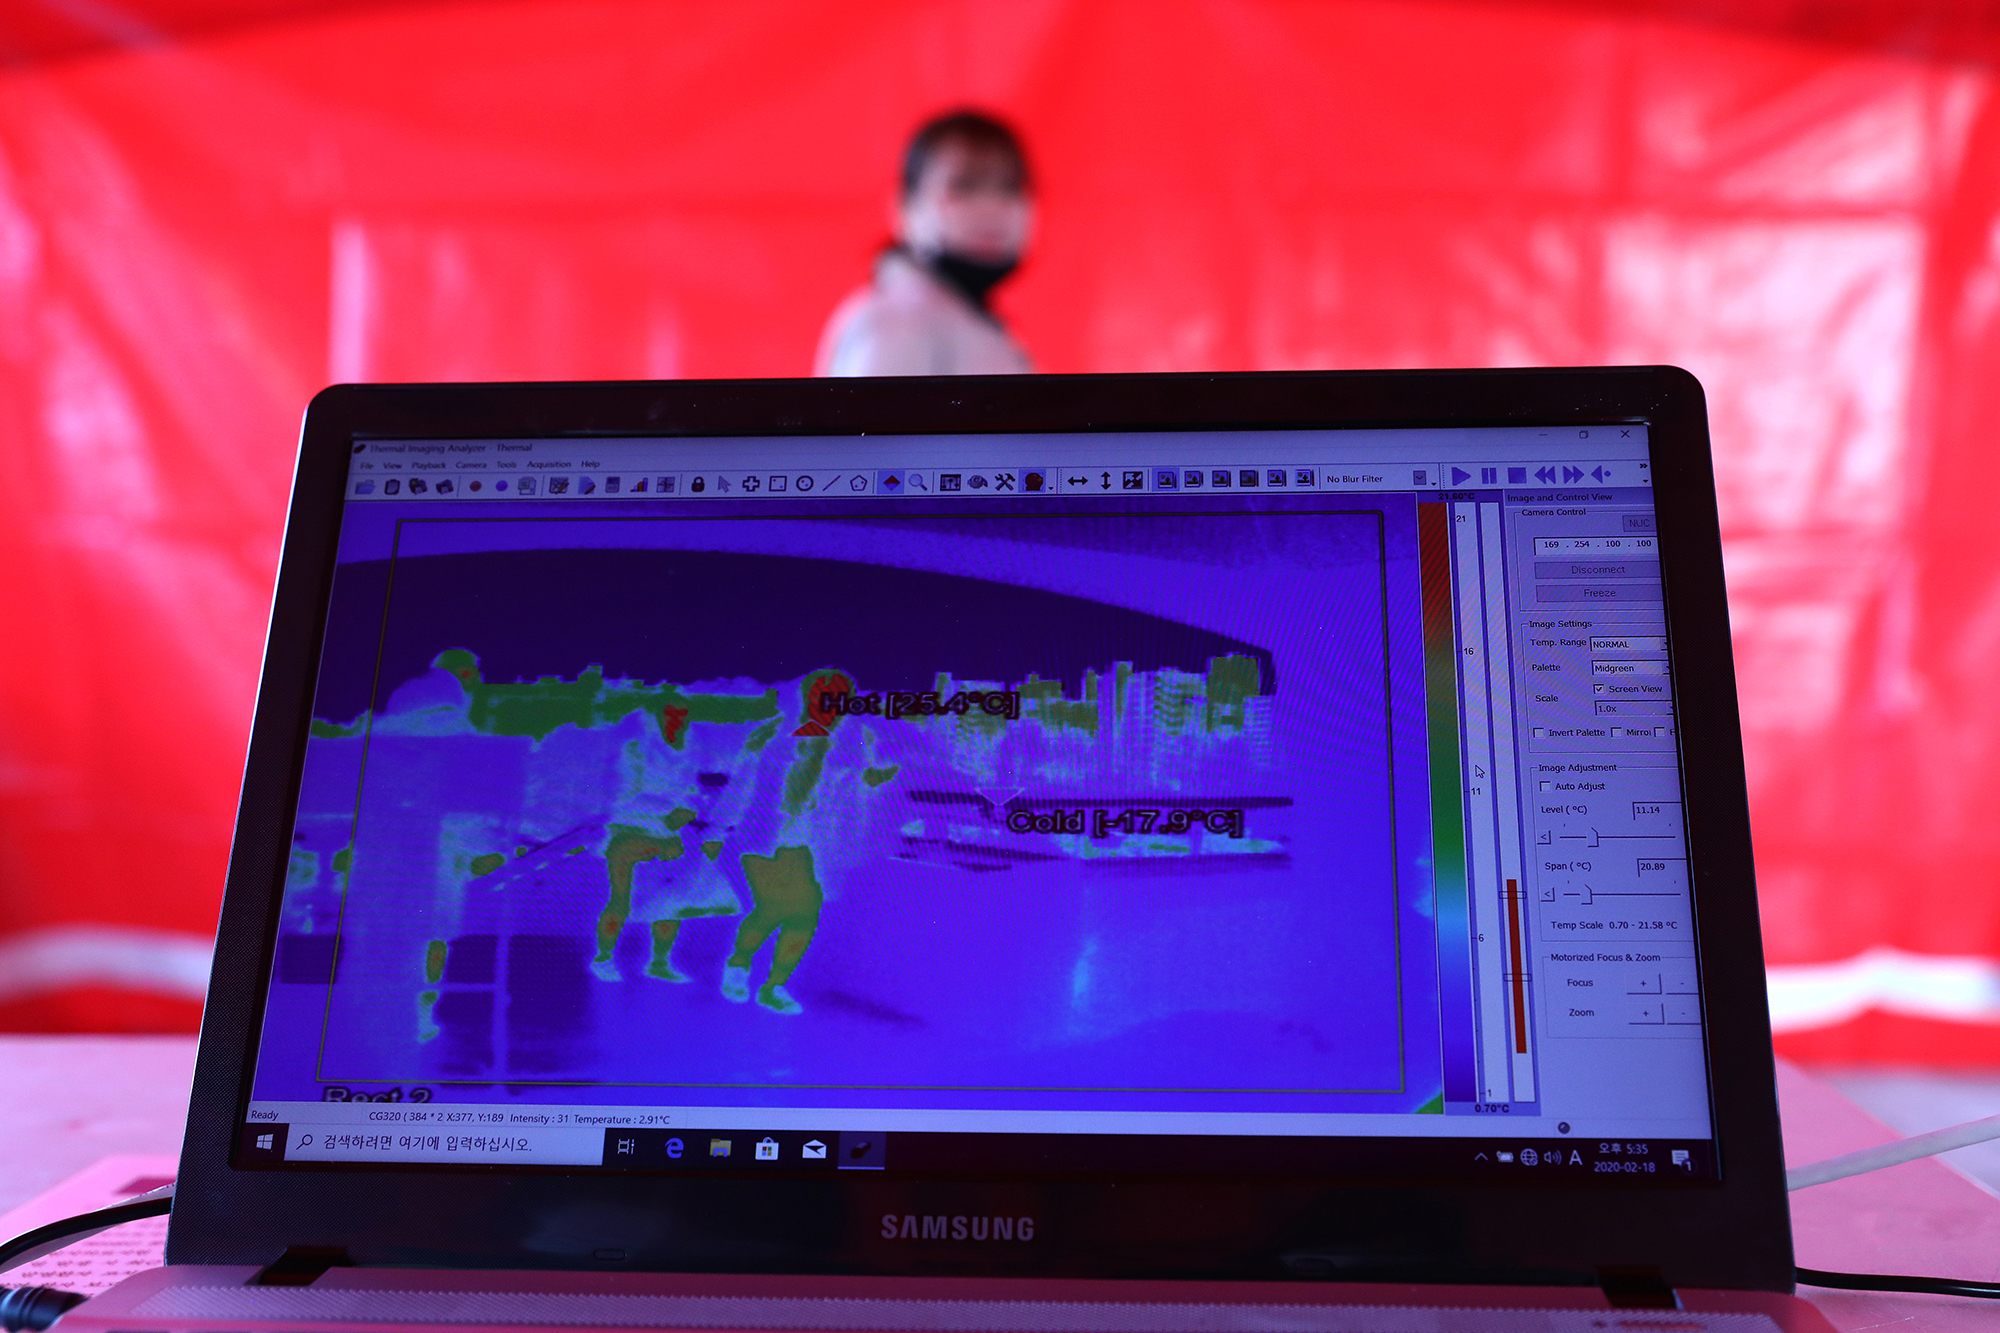 A fan walks past a thermal camera used to look for signs of the coronavirus ahead of the AFC Champions League Group E match between FC Seoul and Melbourne Victory at the Seoul World Cup Stadium on Tuesday, February 18, 2020 in Seoul, South Korea.